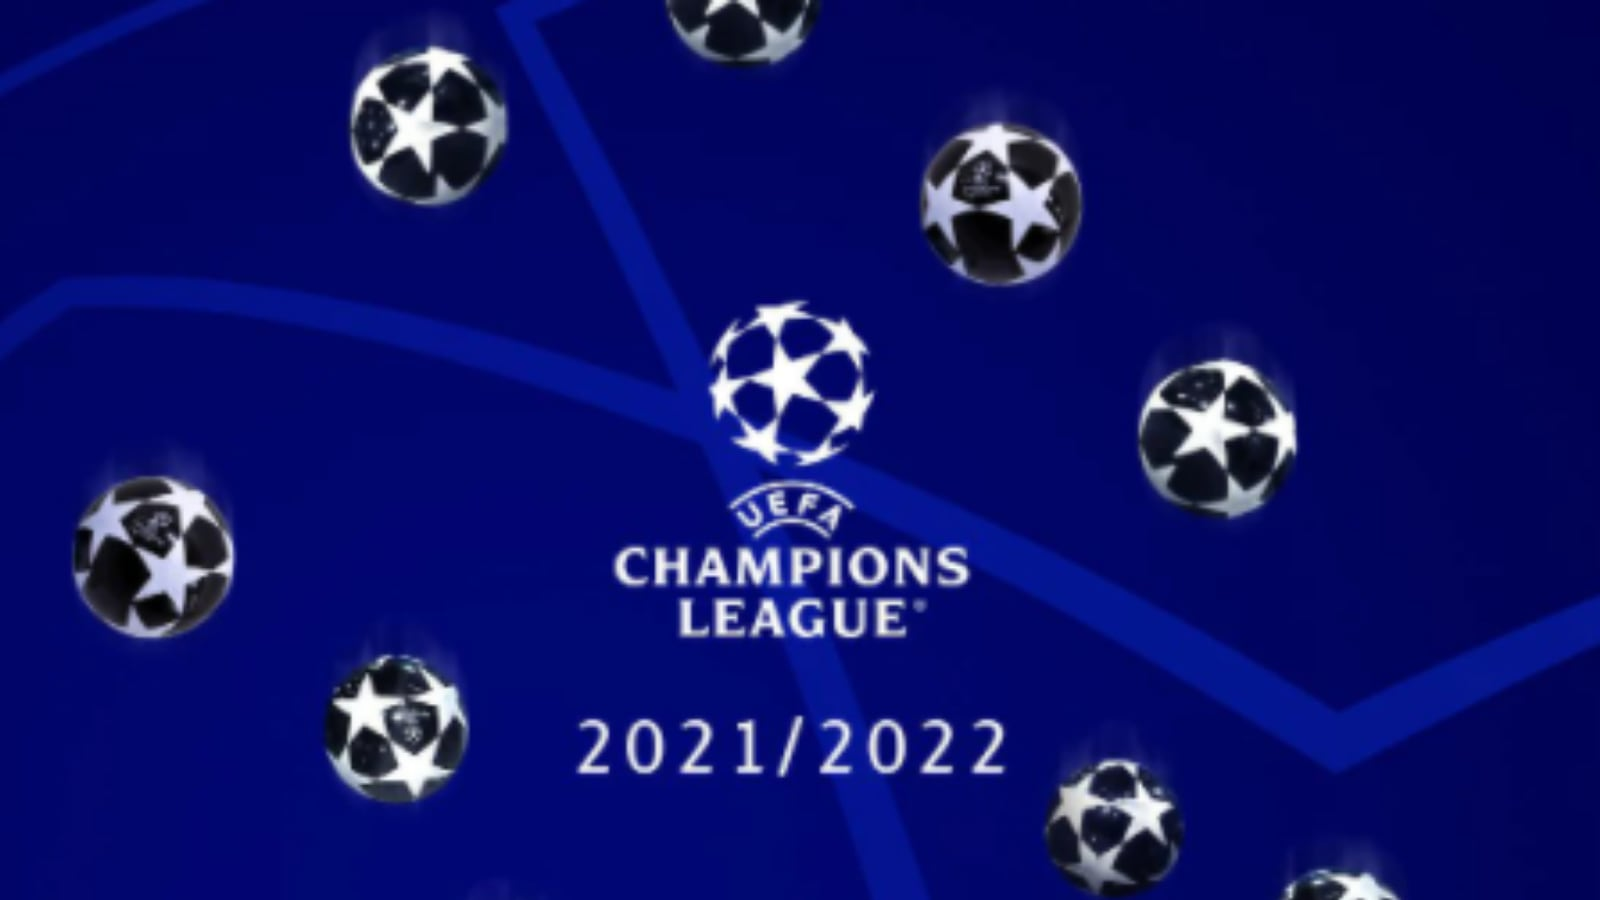 UEFA Champions League Group Stage Draw Highlights: Manchester City Draw PSG, Chelsea to Face Juventus